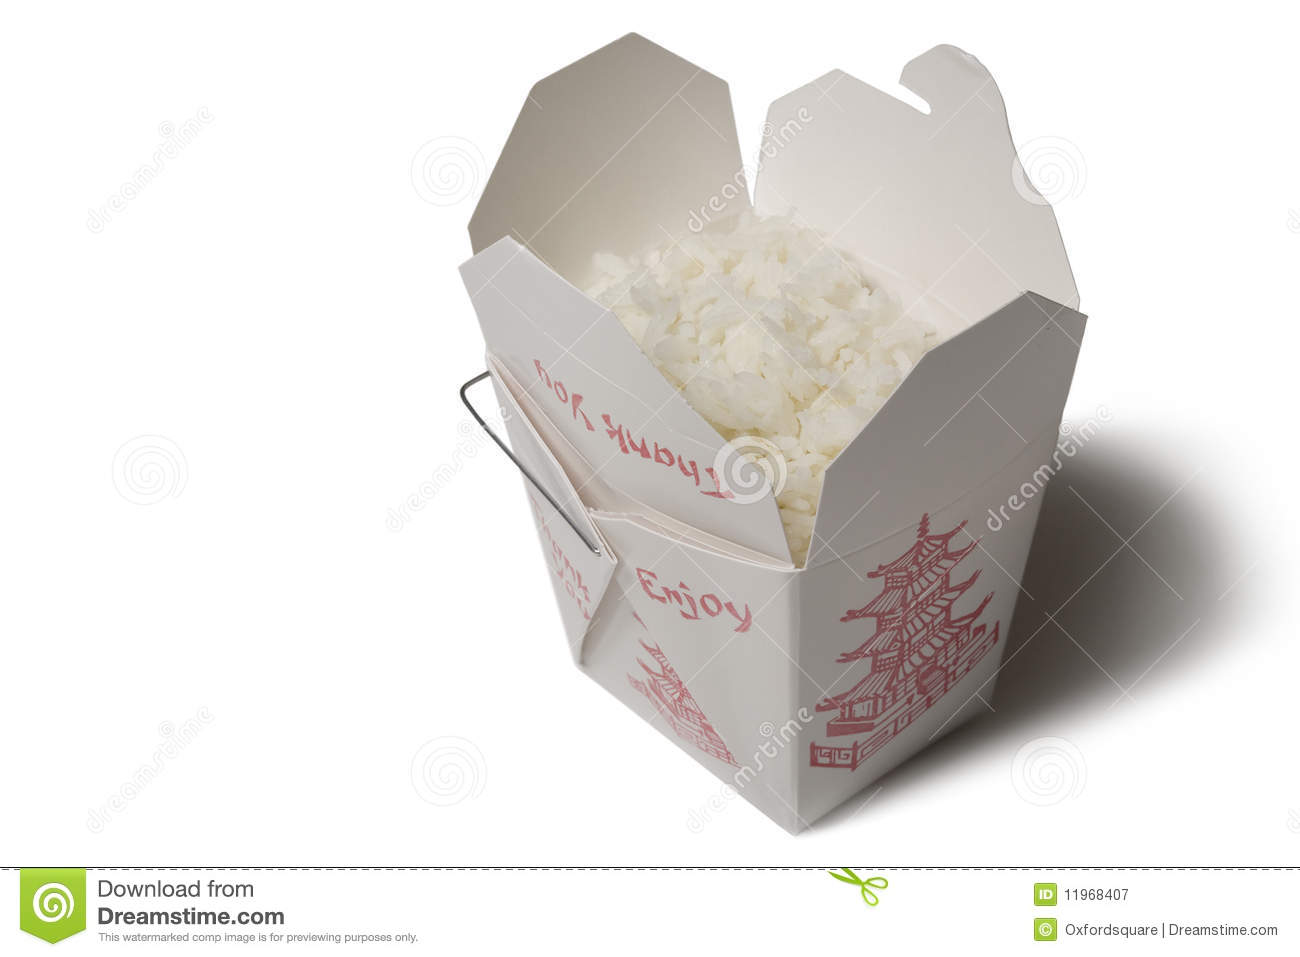 RBX Rice in a Box